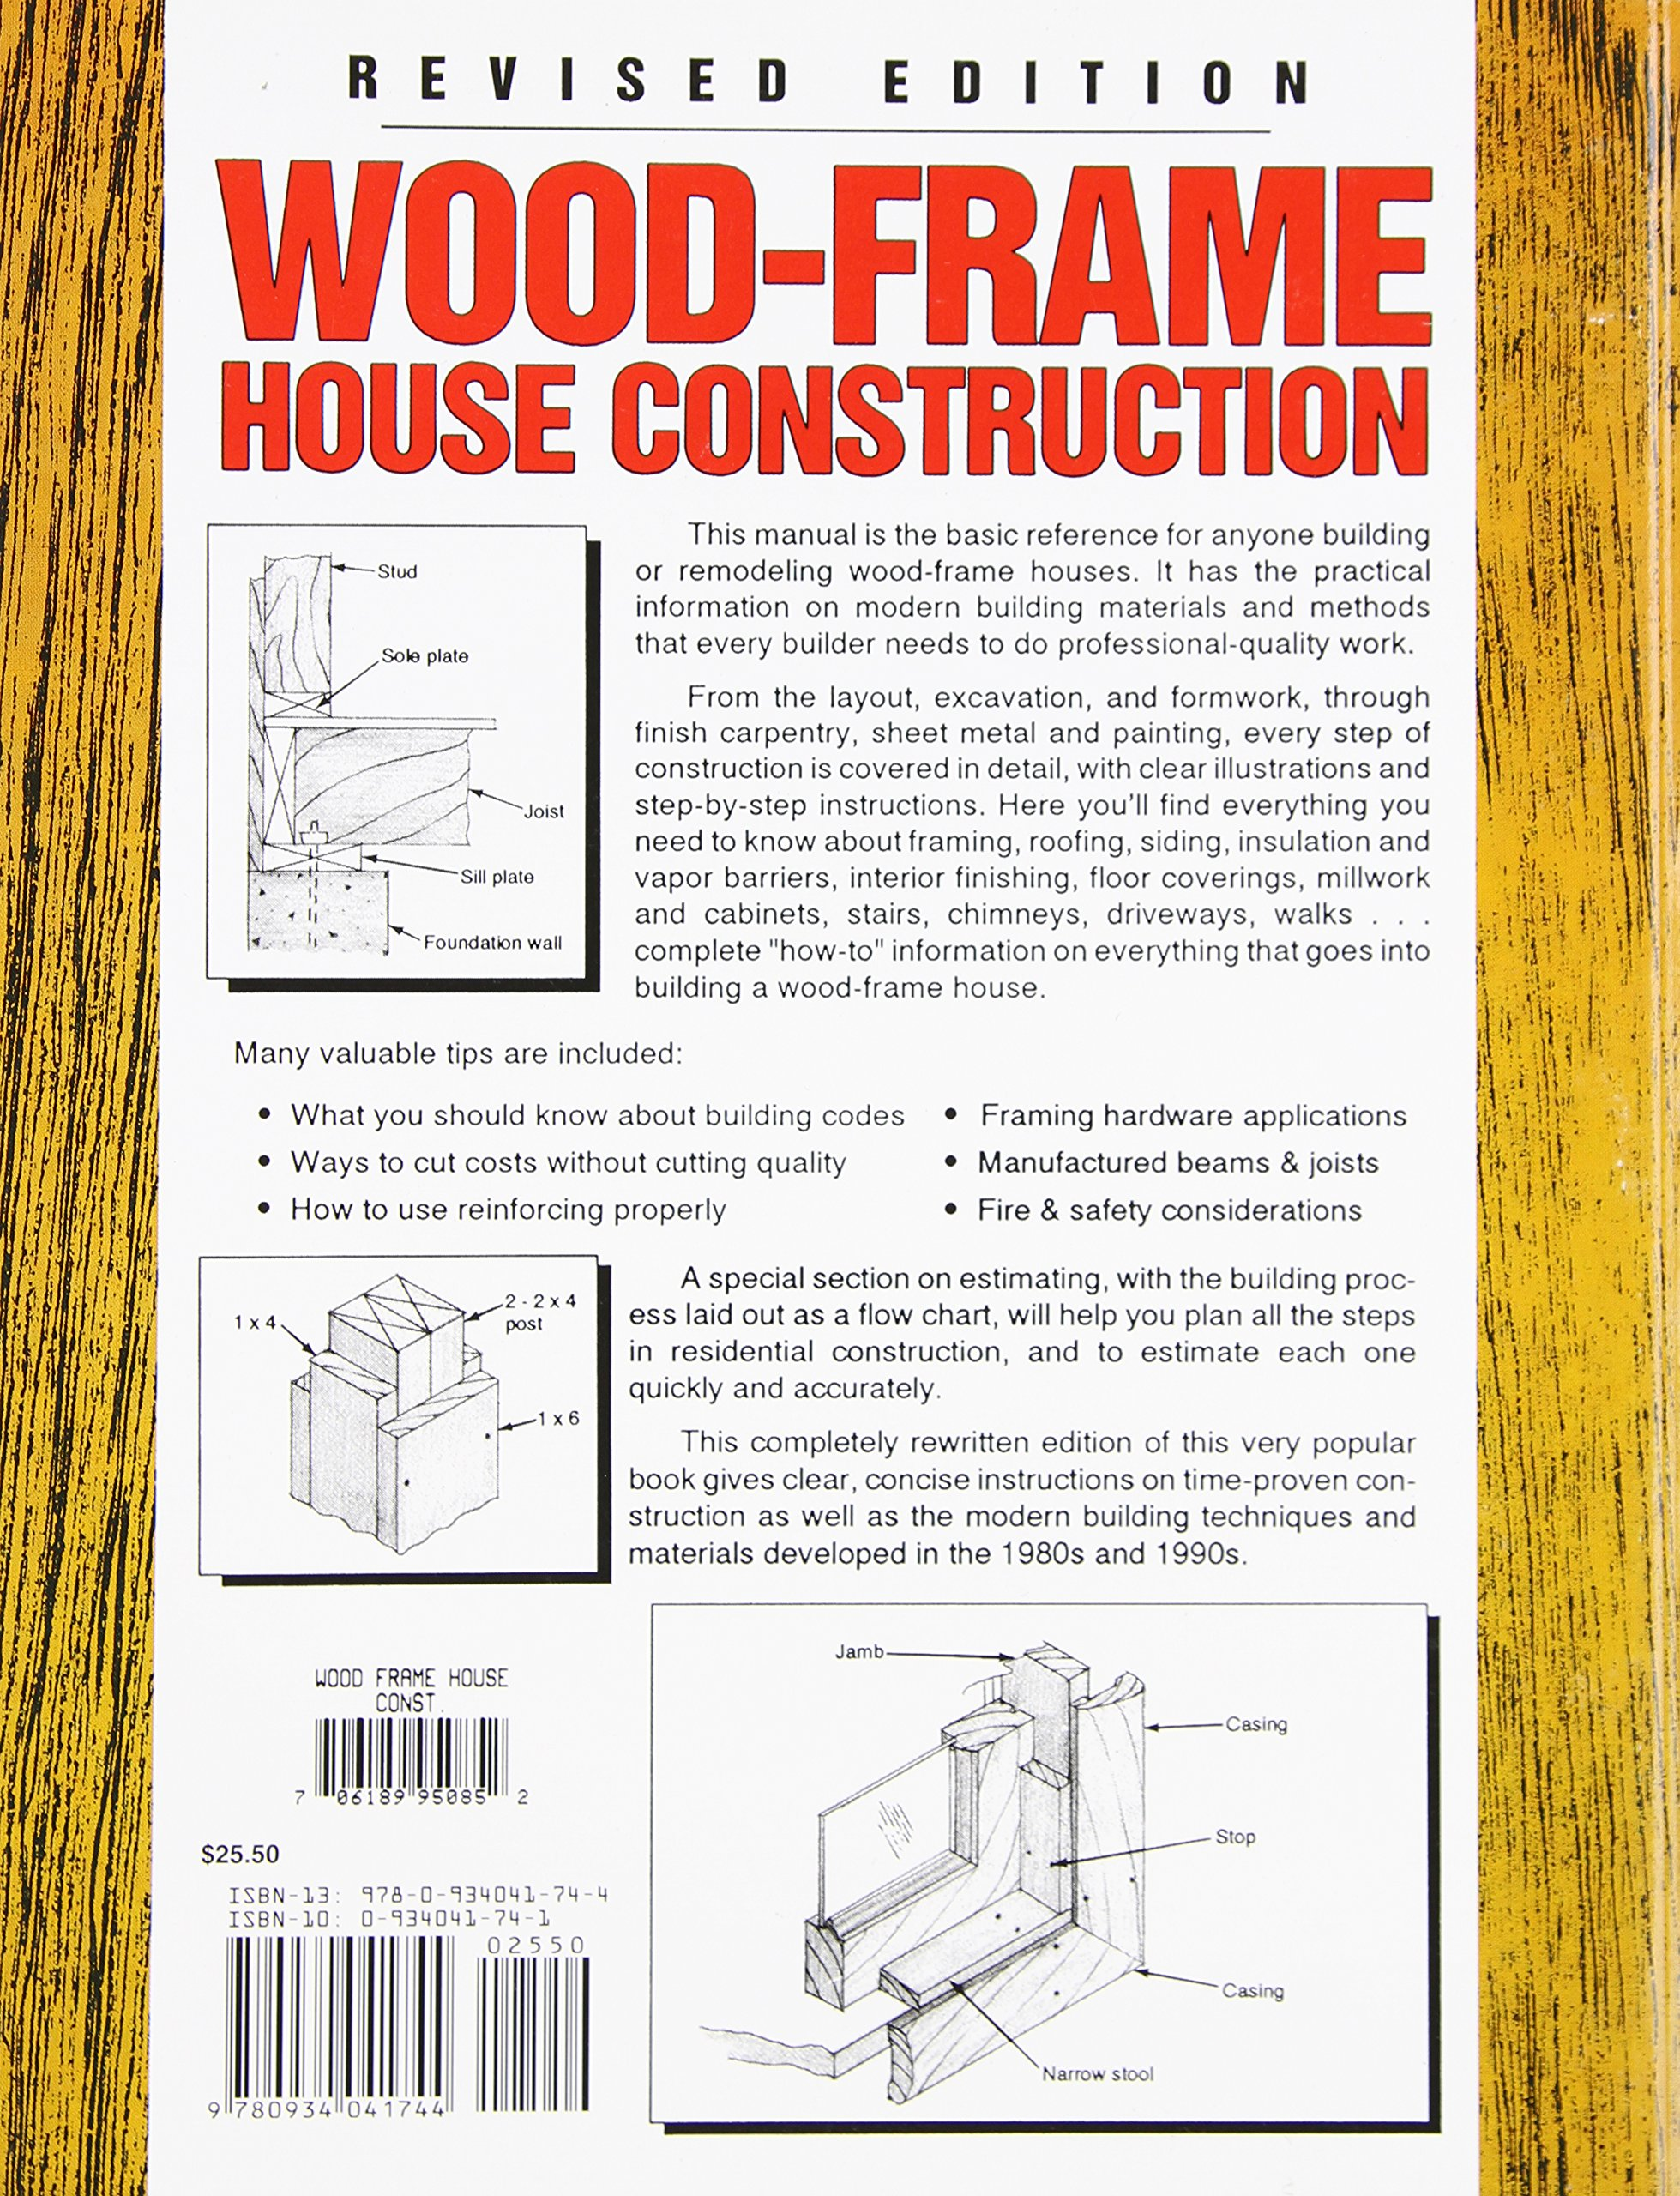 wood frame house construction complete wood frame house construction complete